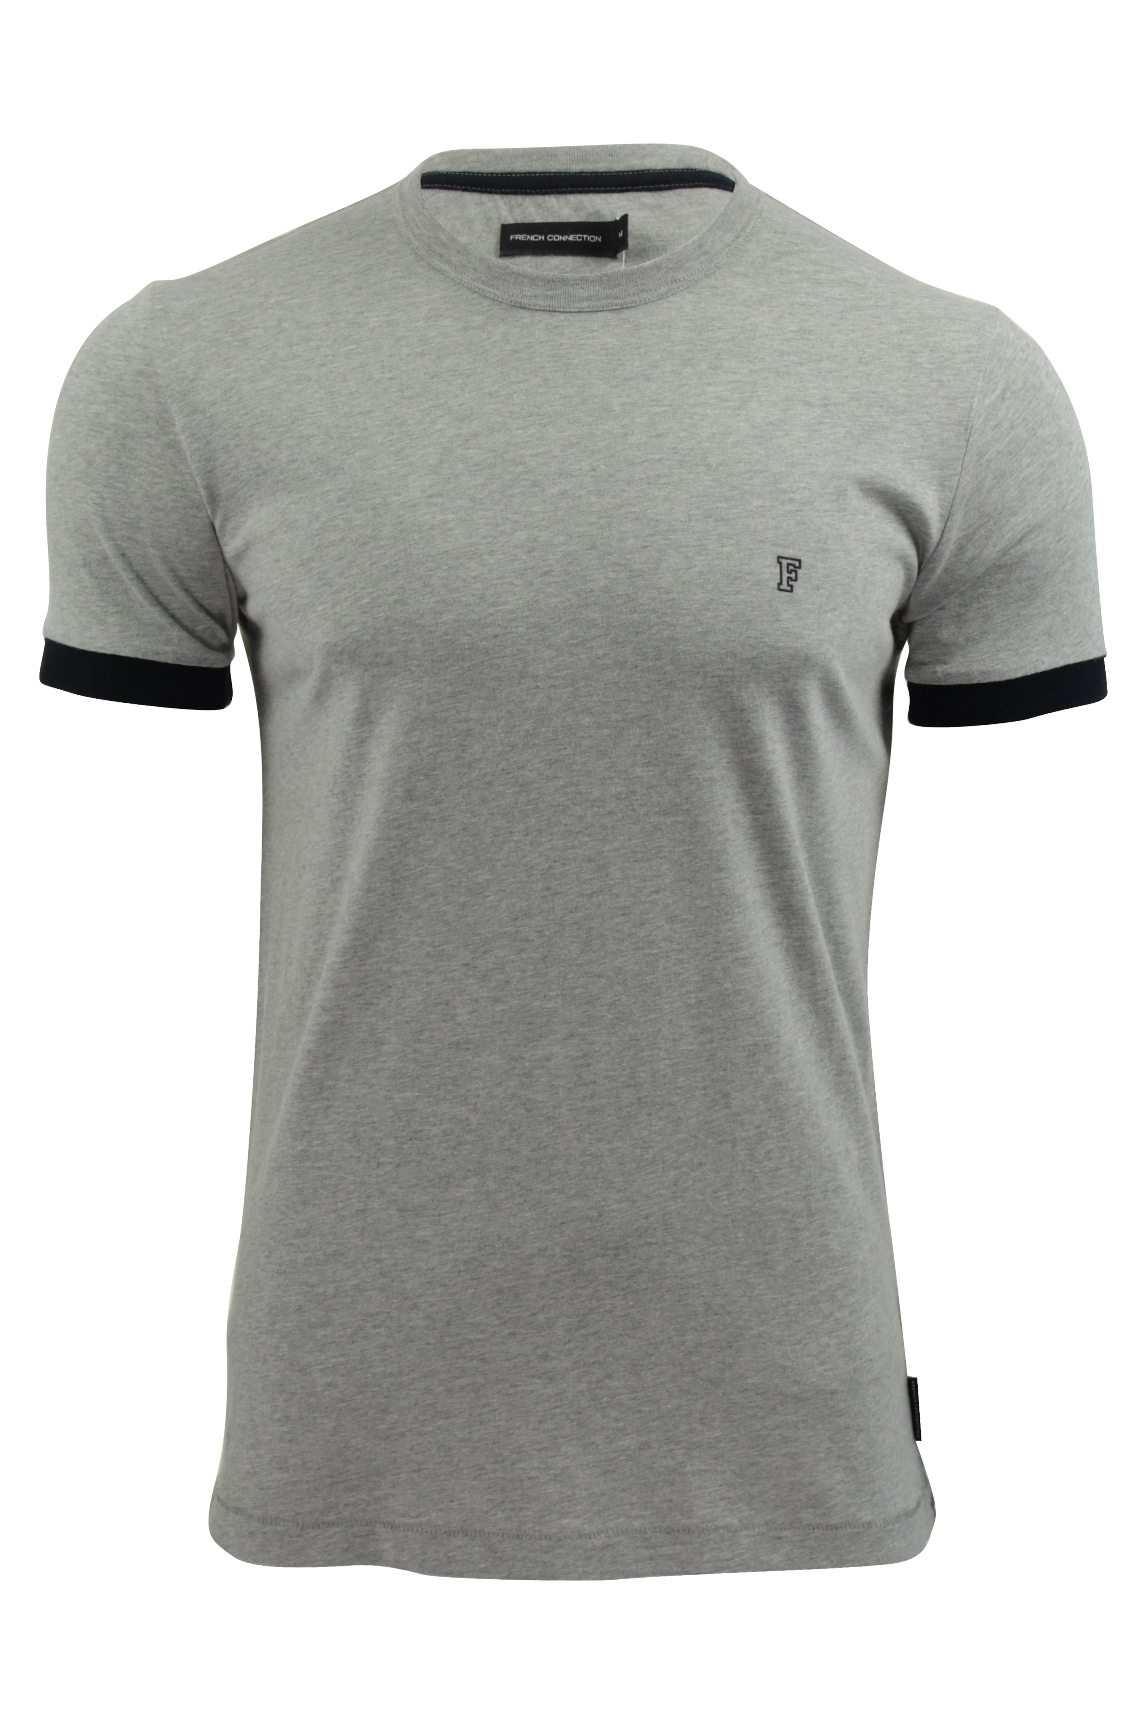 9f9caa996 Mens T-Shirt by FCUK/French Connection Summer Contrast Cuff   eBay